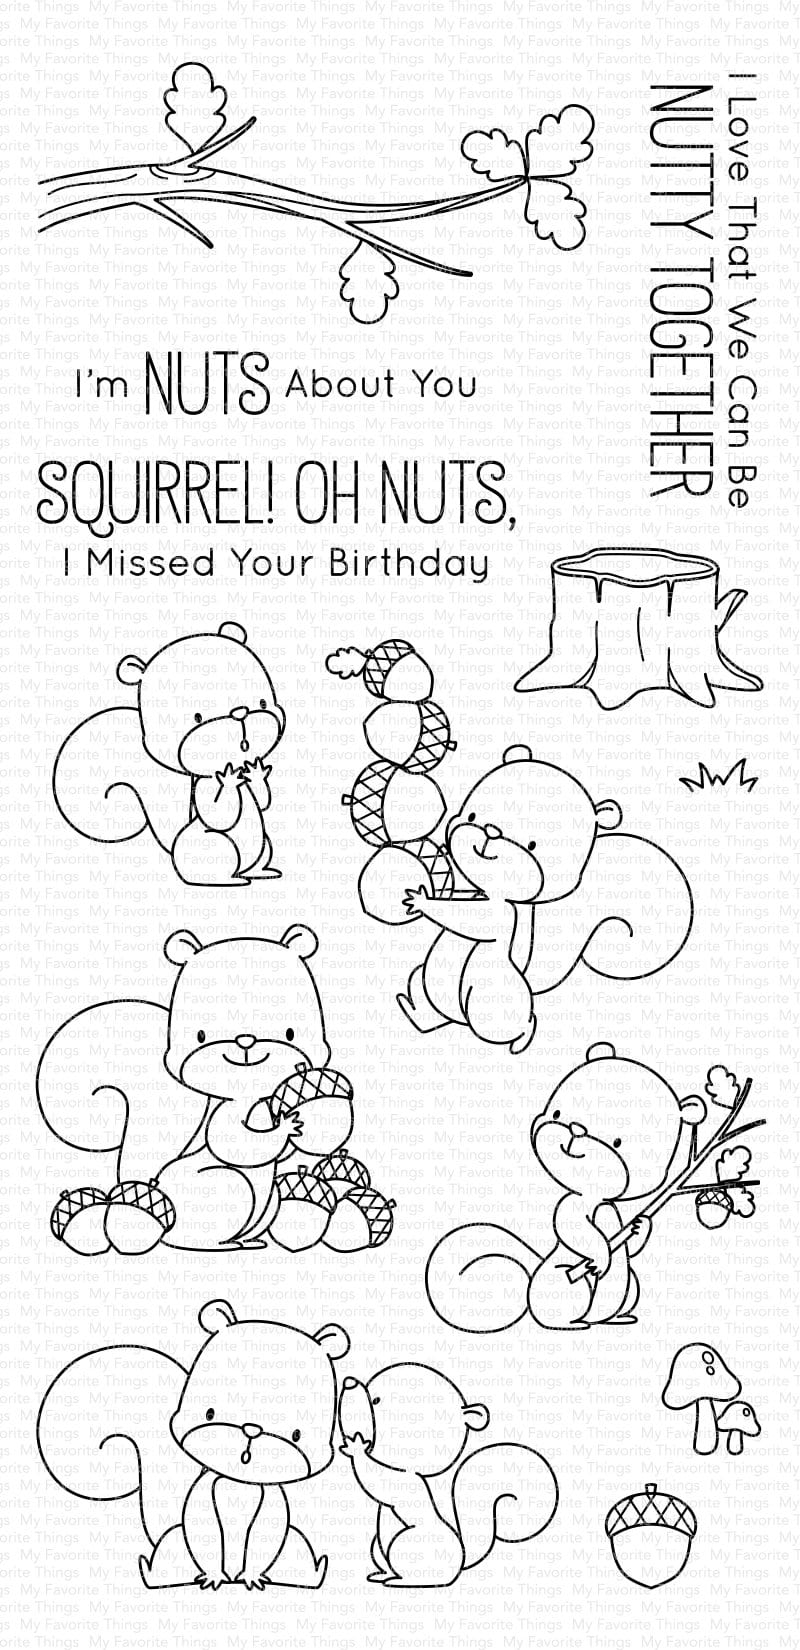 BB Squirrel!